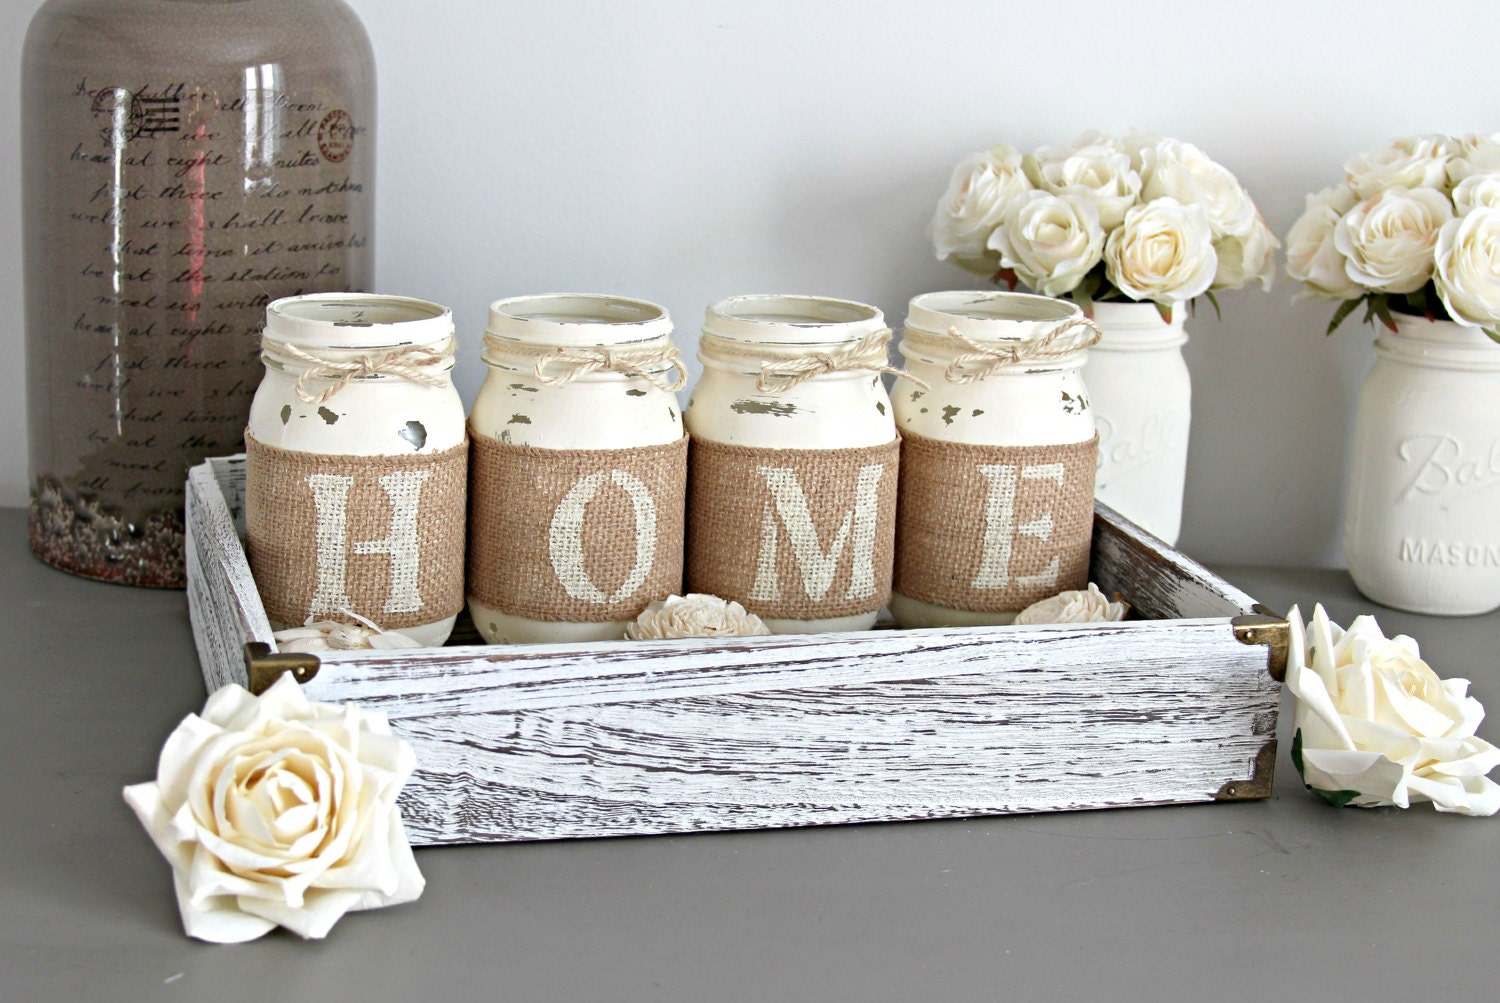 Rustic Housewarming Gift Rustic Table Decor Rustic Home Decor Realtor Gift Table